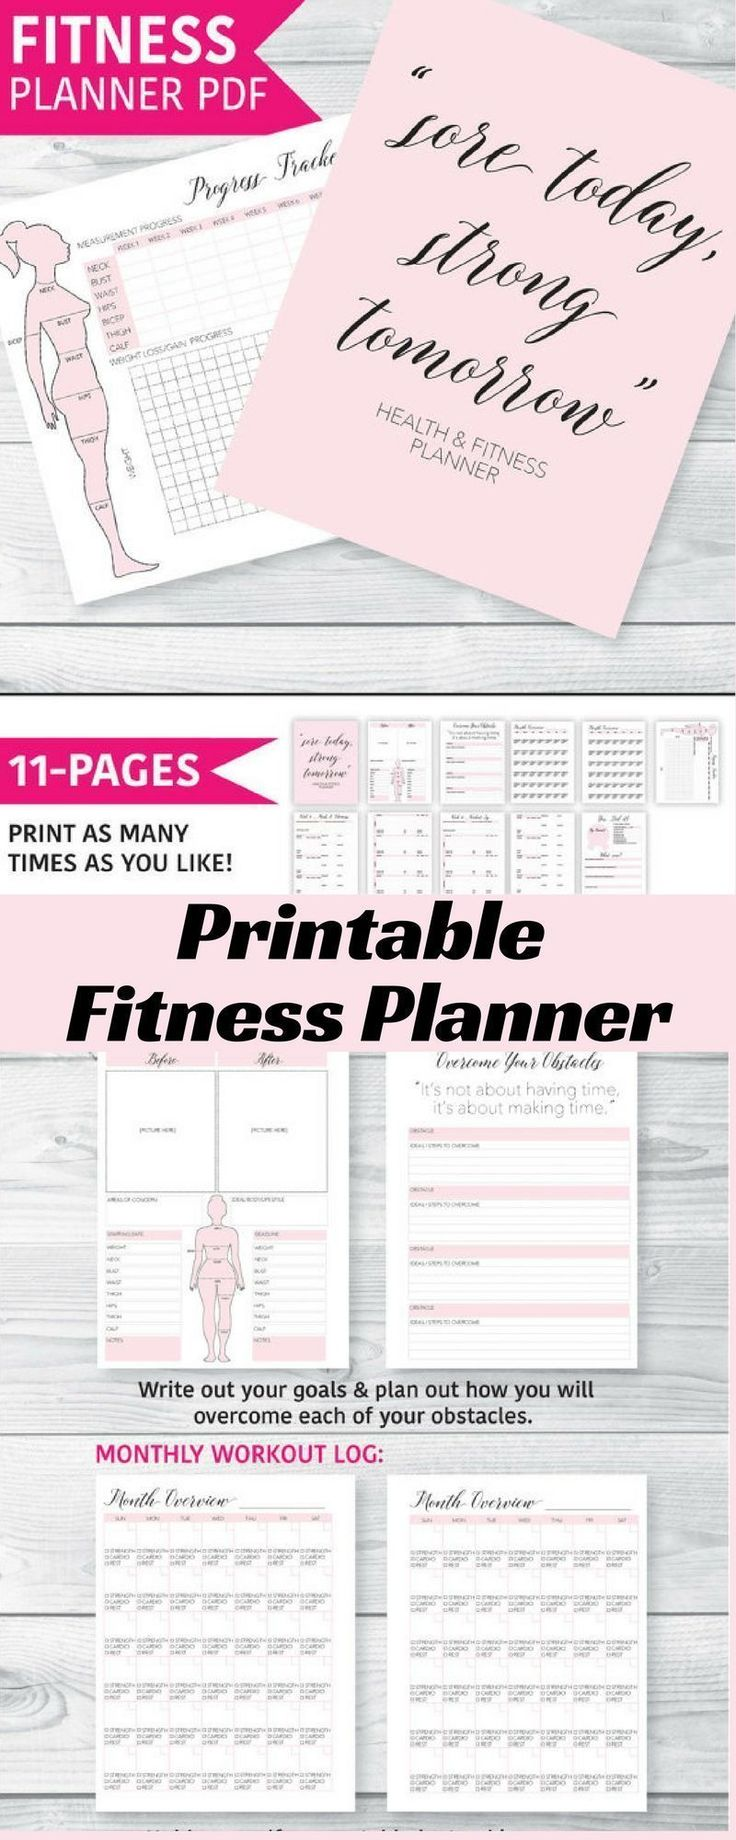 Holiday Essays Fitness Planner Fitness Journal Health And Fitness Planner Workout Log  Workout Planner Planner Inserts Fitness Printable Example Of Literary Essay also Essay Com Best  Workout Planner Ideas On Pinterest  Fitness Tracker  Greek Mythology Essay